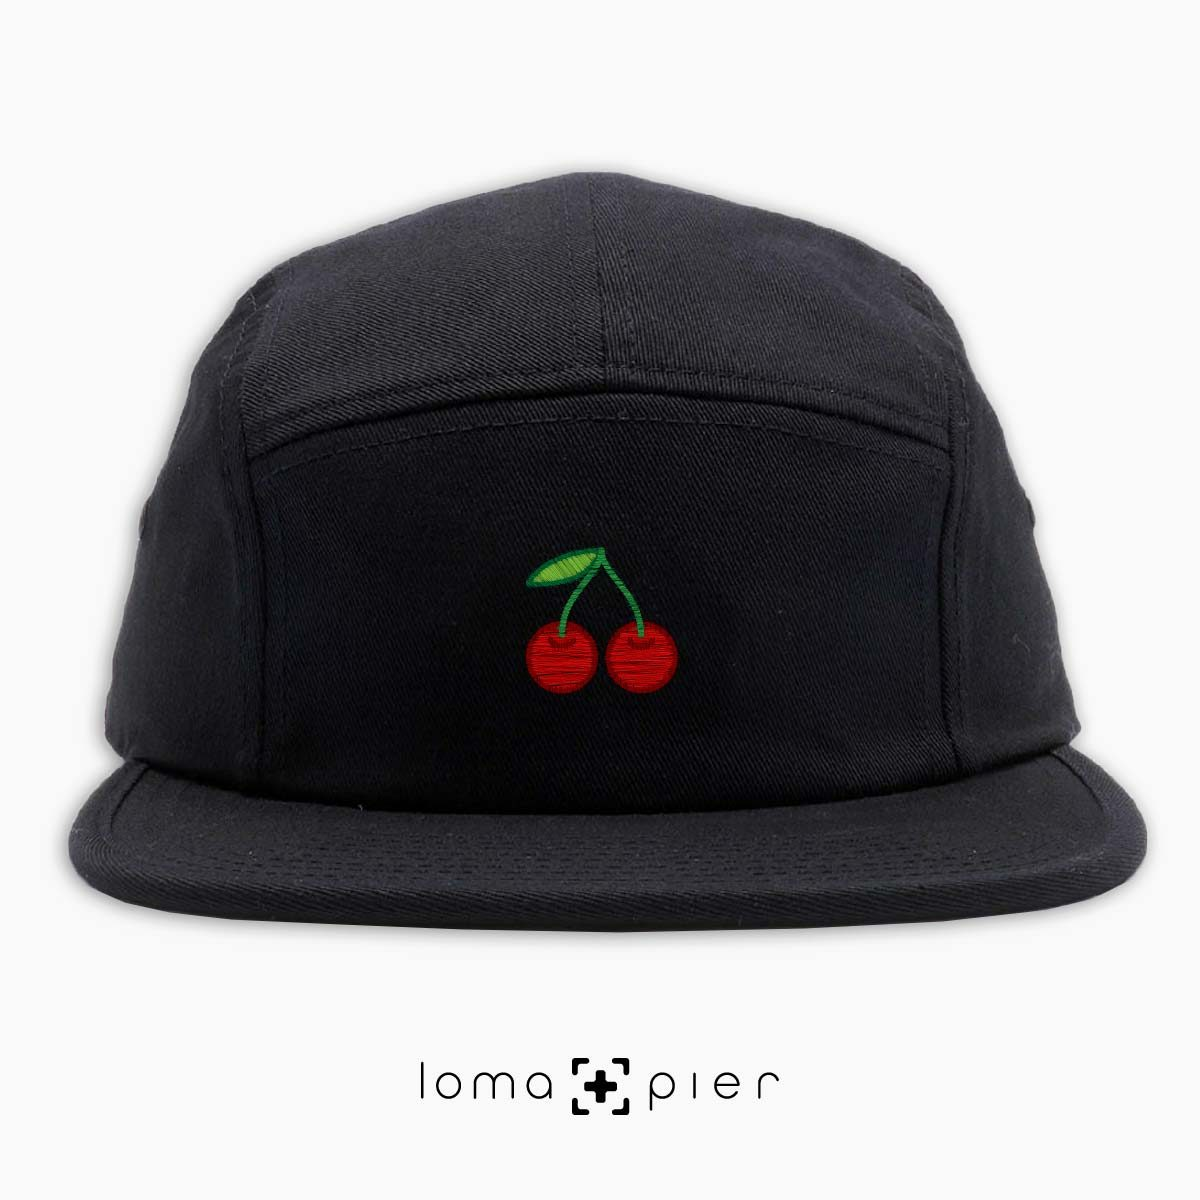 CHERRIES icon embroidered on a black cotton 5-panel hat by loma+pier hat store